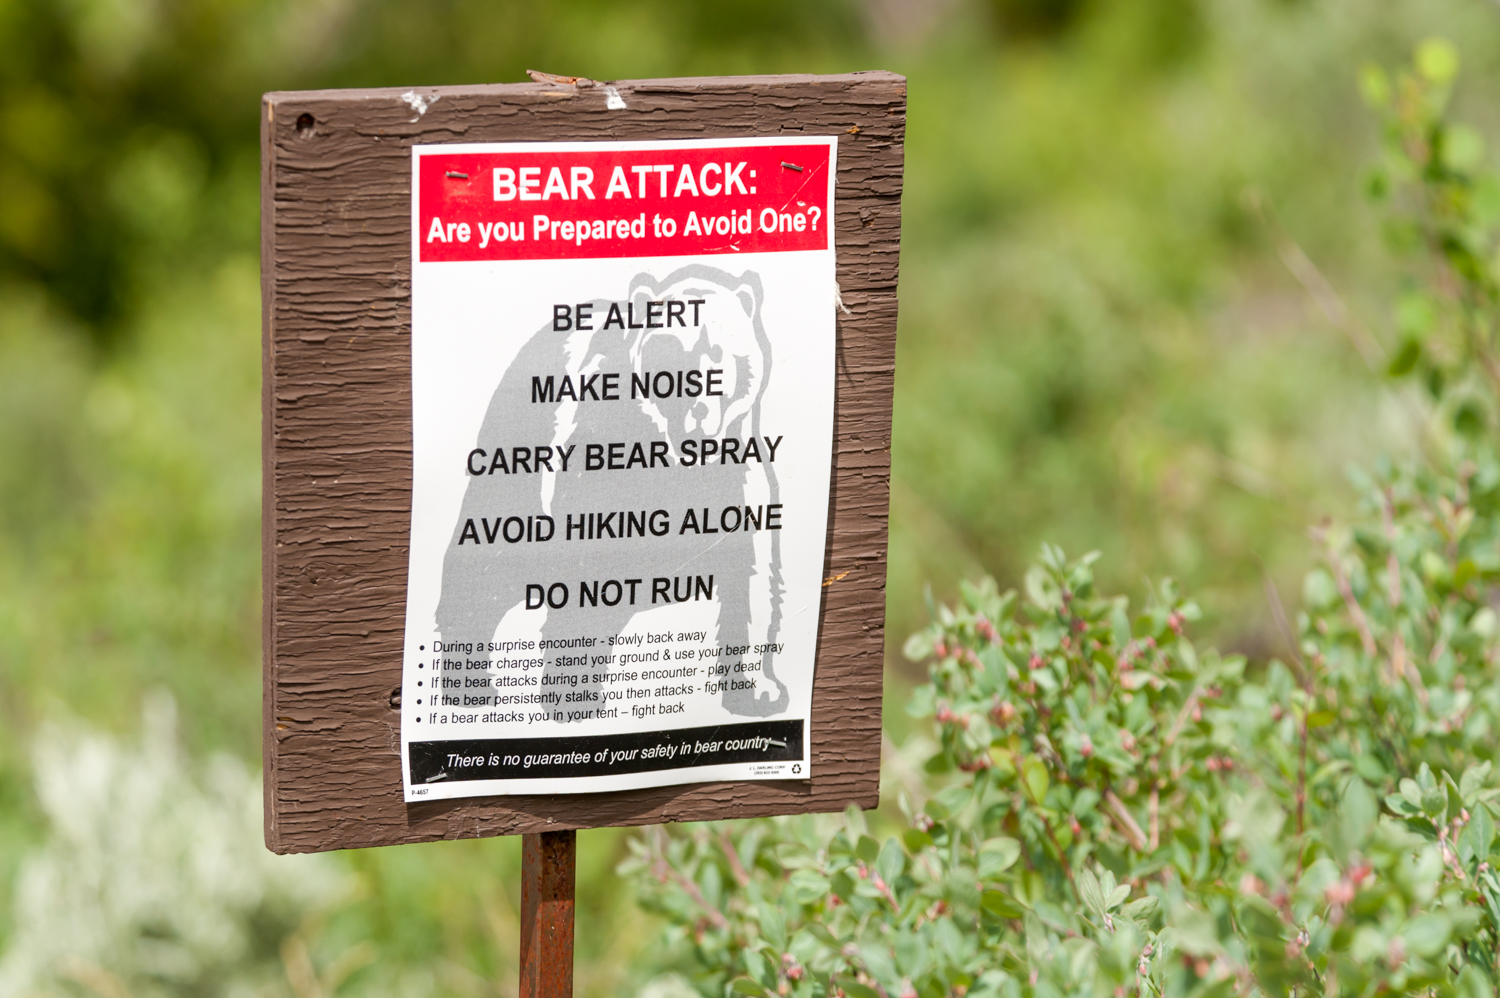 Pat Attention to National Park Service Signs